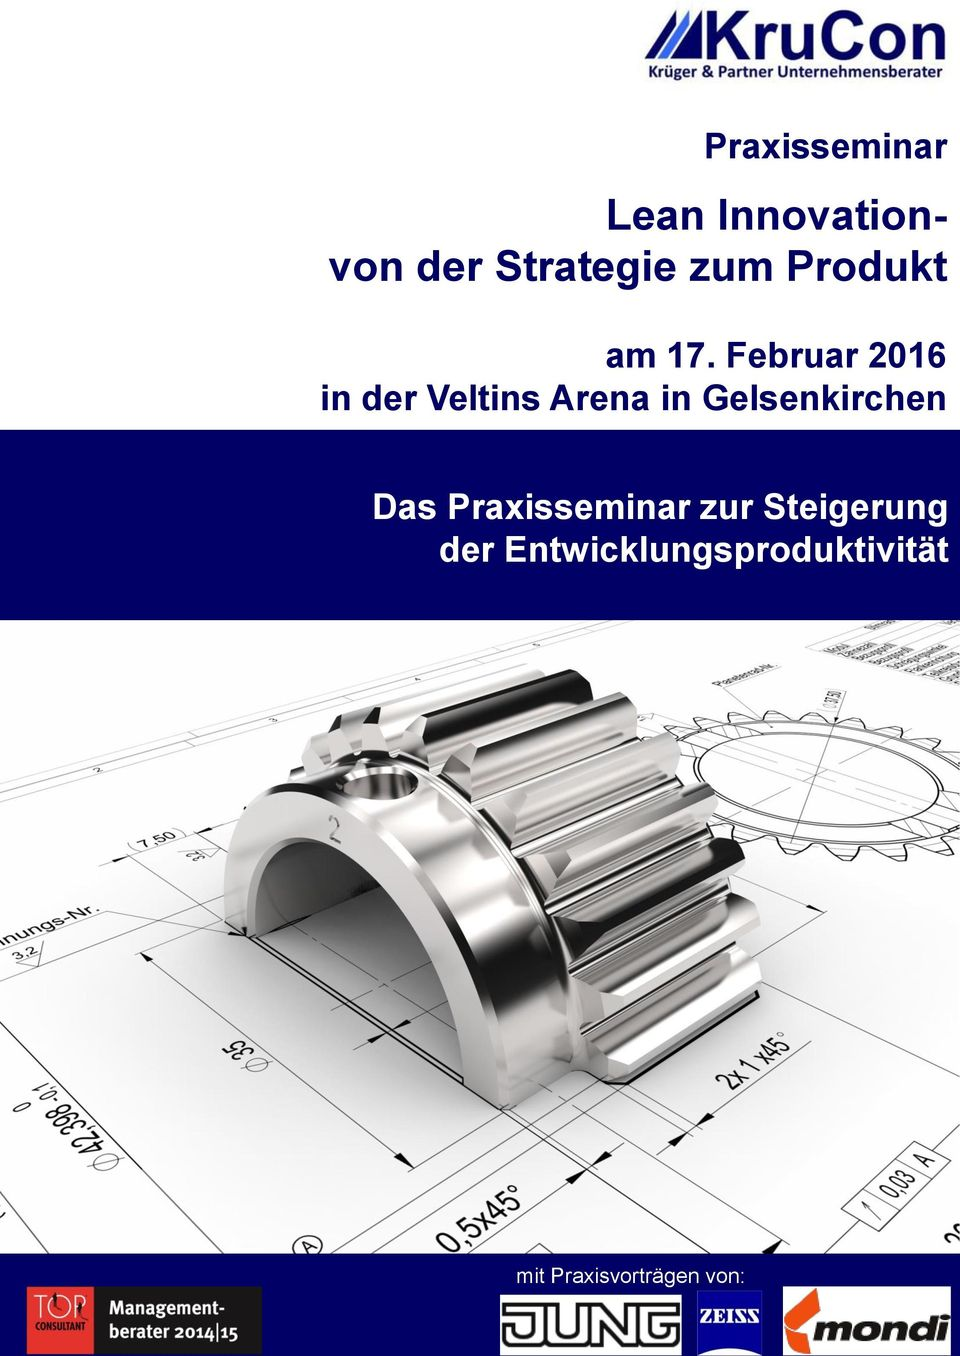 Februar 2016 in der Veltins Arena in Gelsenkirchen